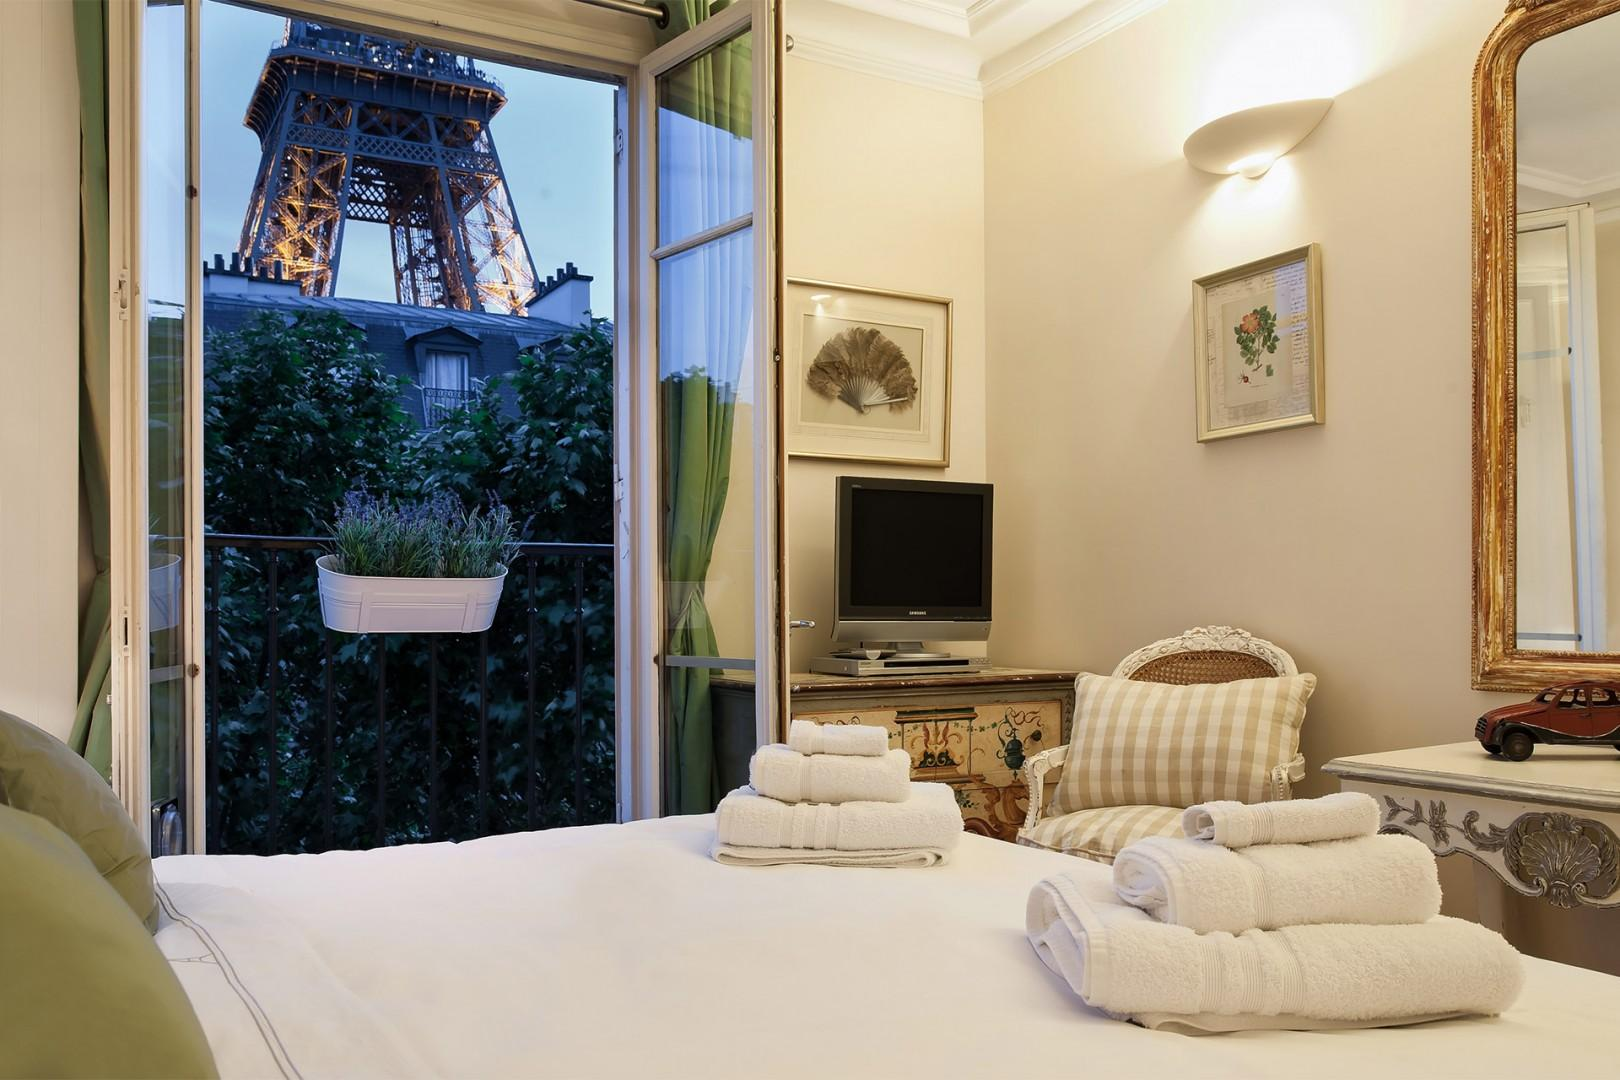 The apartment has been featured in magazines thanks to its spectacular Eiffel Tower views.